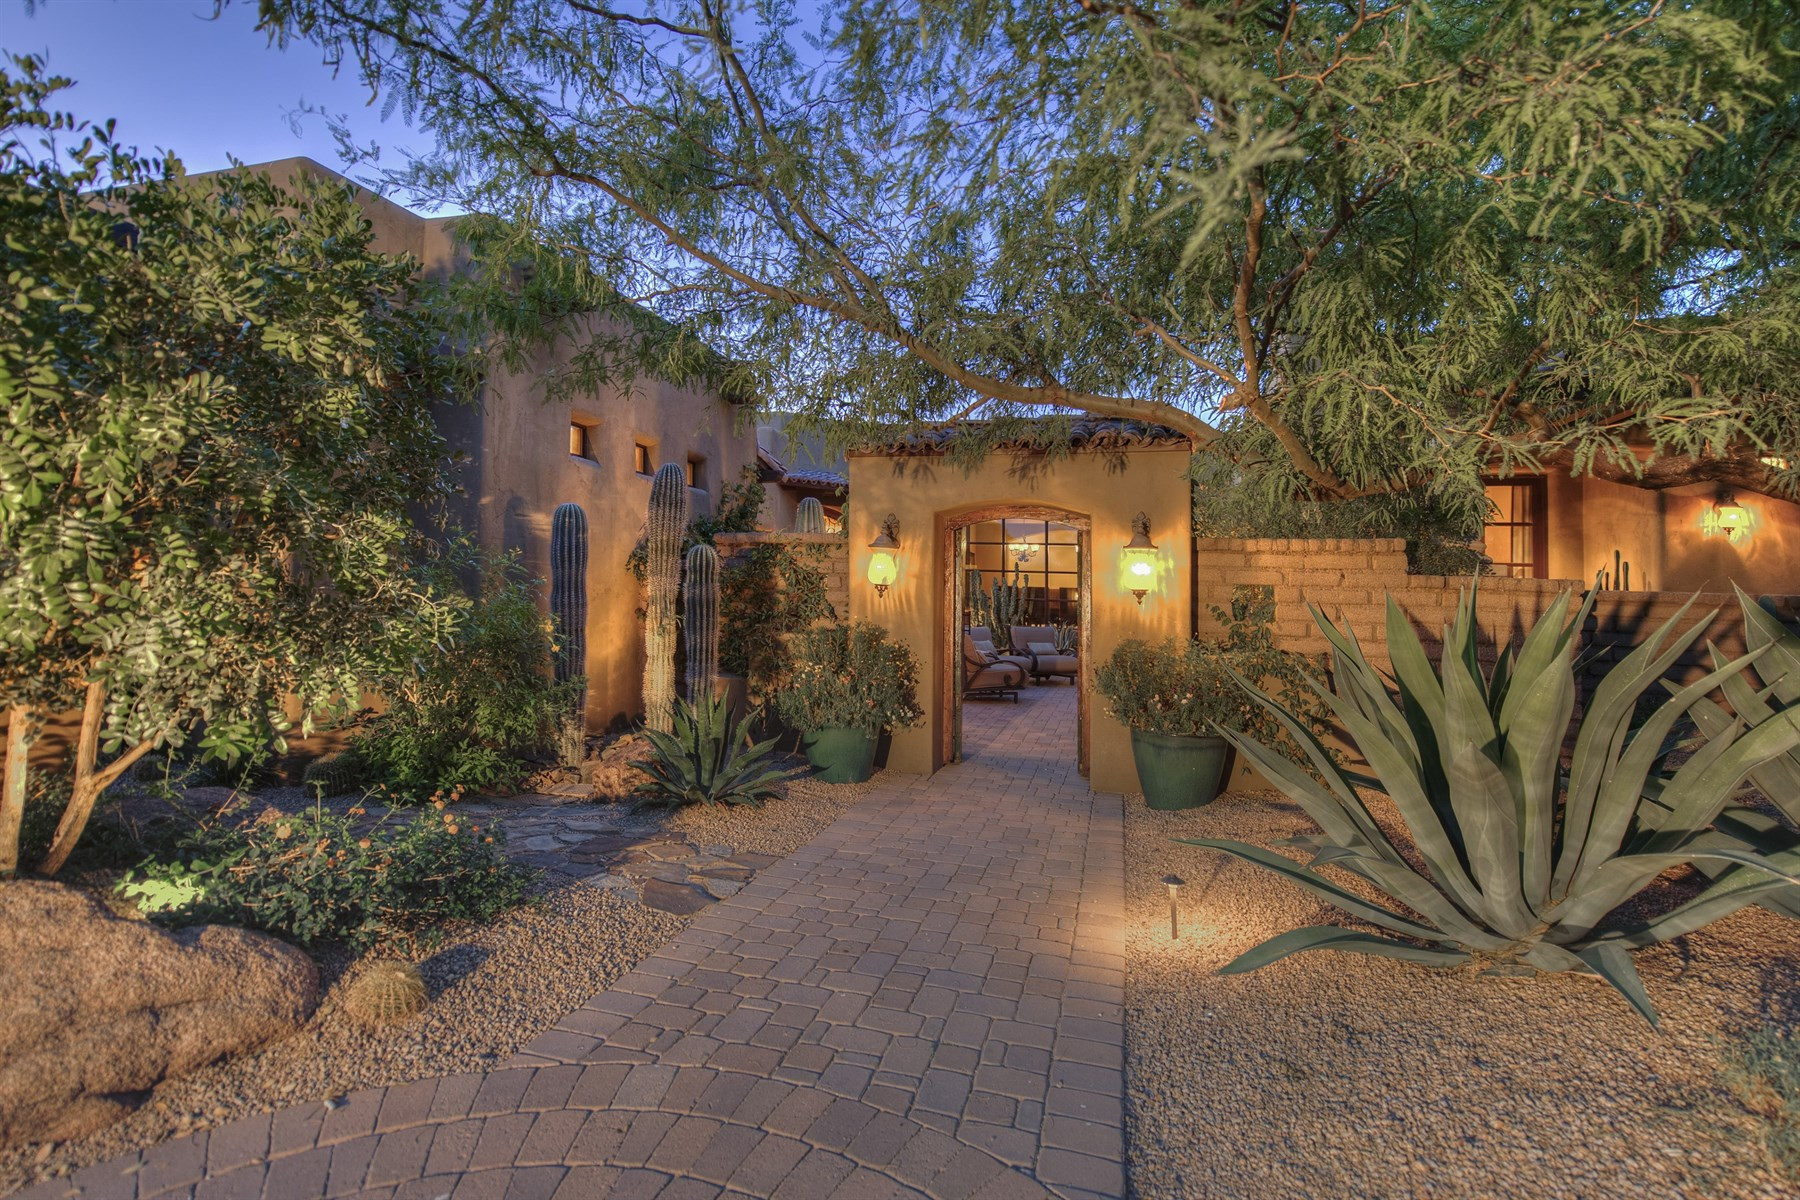 Maison unifamiliale pour l Vente à Authentic Territorial Custom Home In Guard-Gated Community Of Whisper Rock 7298 E Lower Wash Pass Scottsdale, Arizona, 85266 États-Unis